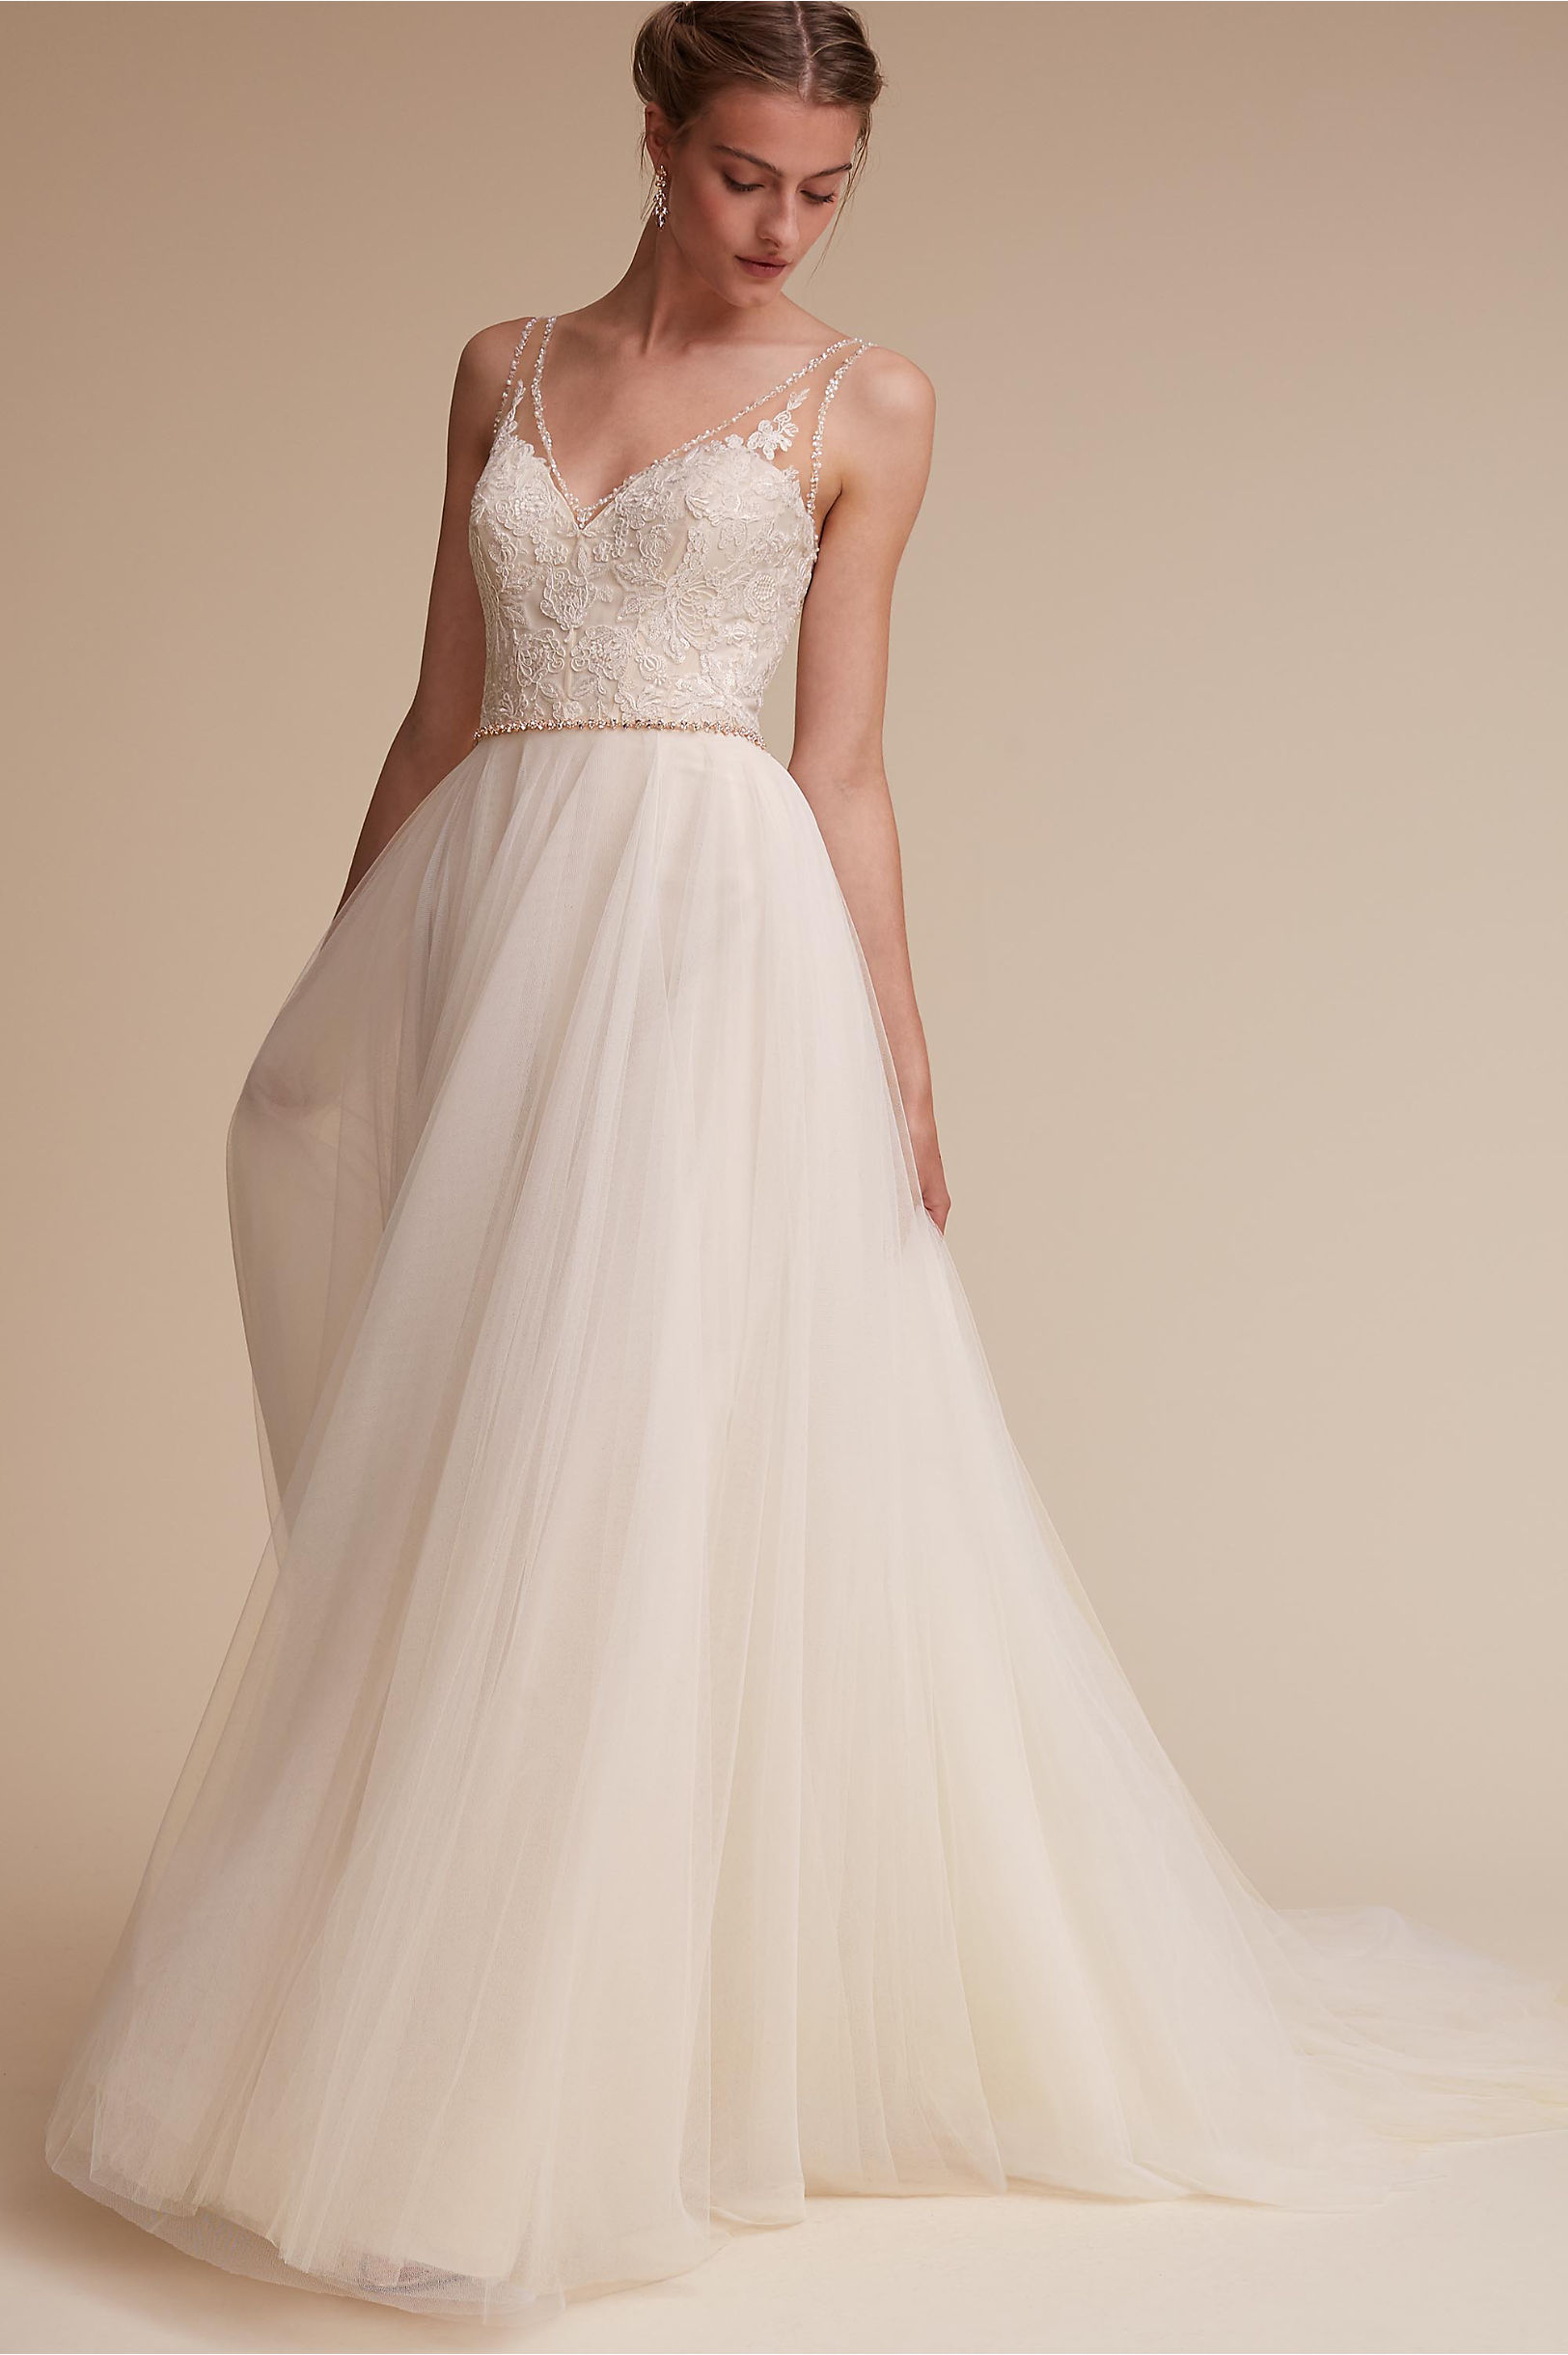 how to select a bridal dress